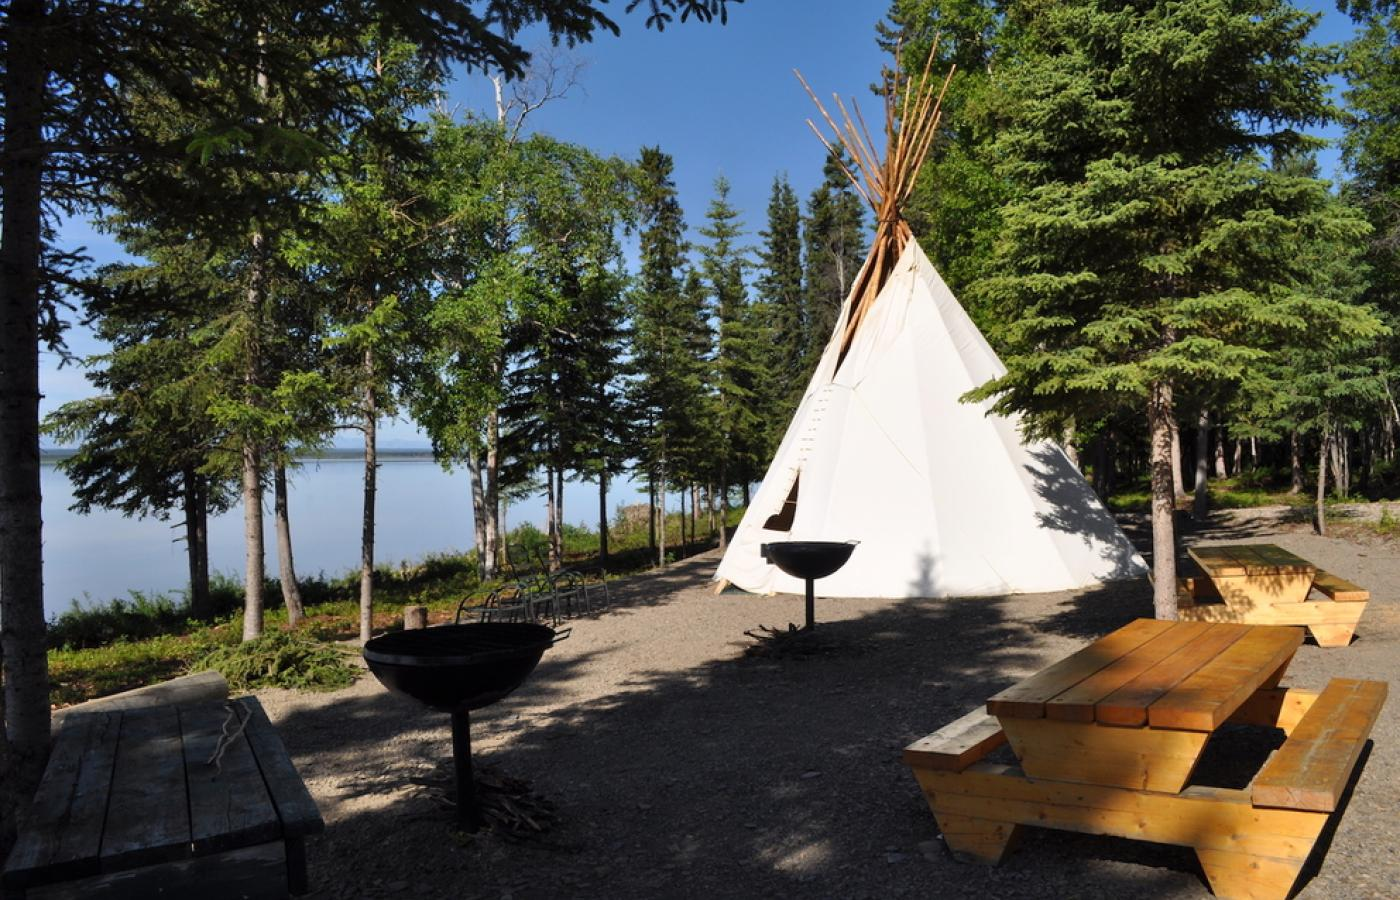 Have a stay at MacKinnon Territorial Park near Norman Wells, in Canada's Northwest Territories